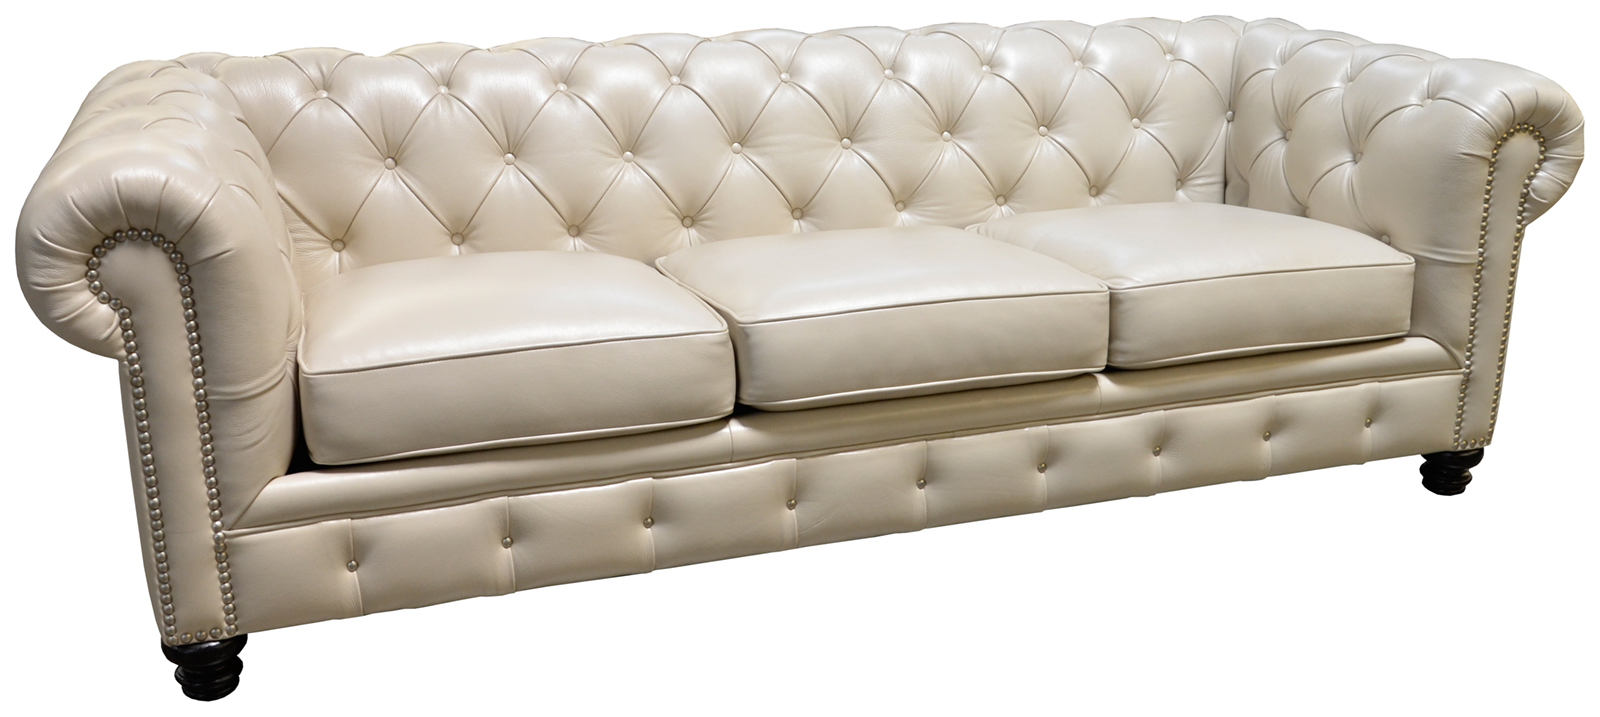 Remington Sofa Arizona Leather Interiors